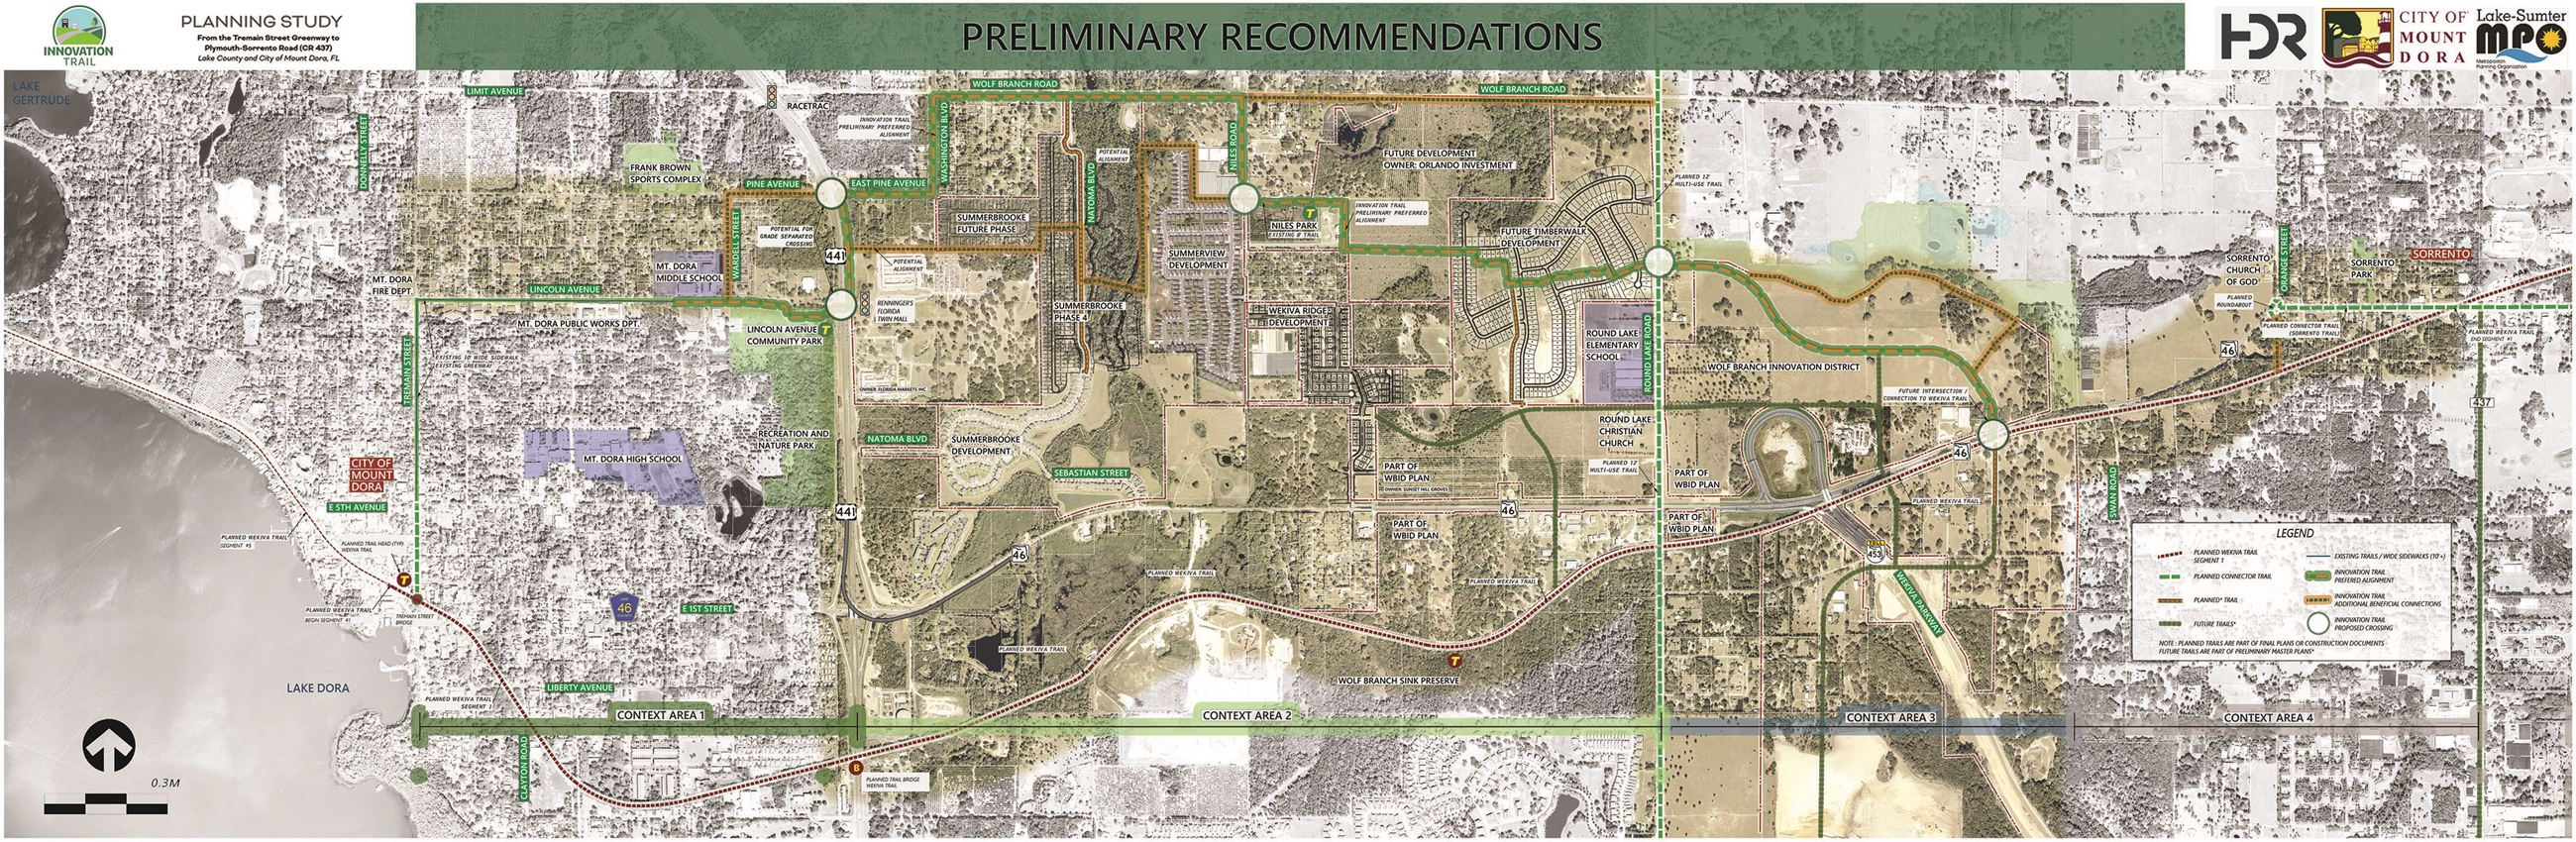 Innovation Trail Preliminary Recommendations Map